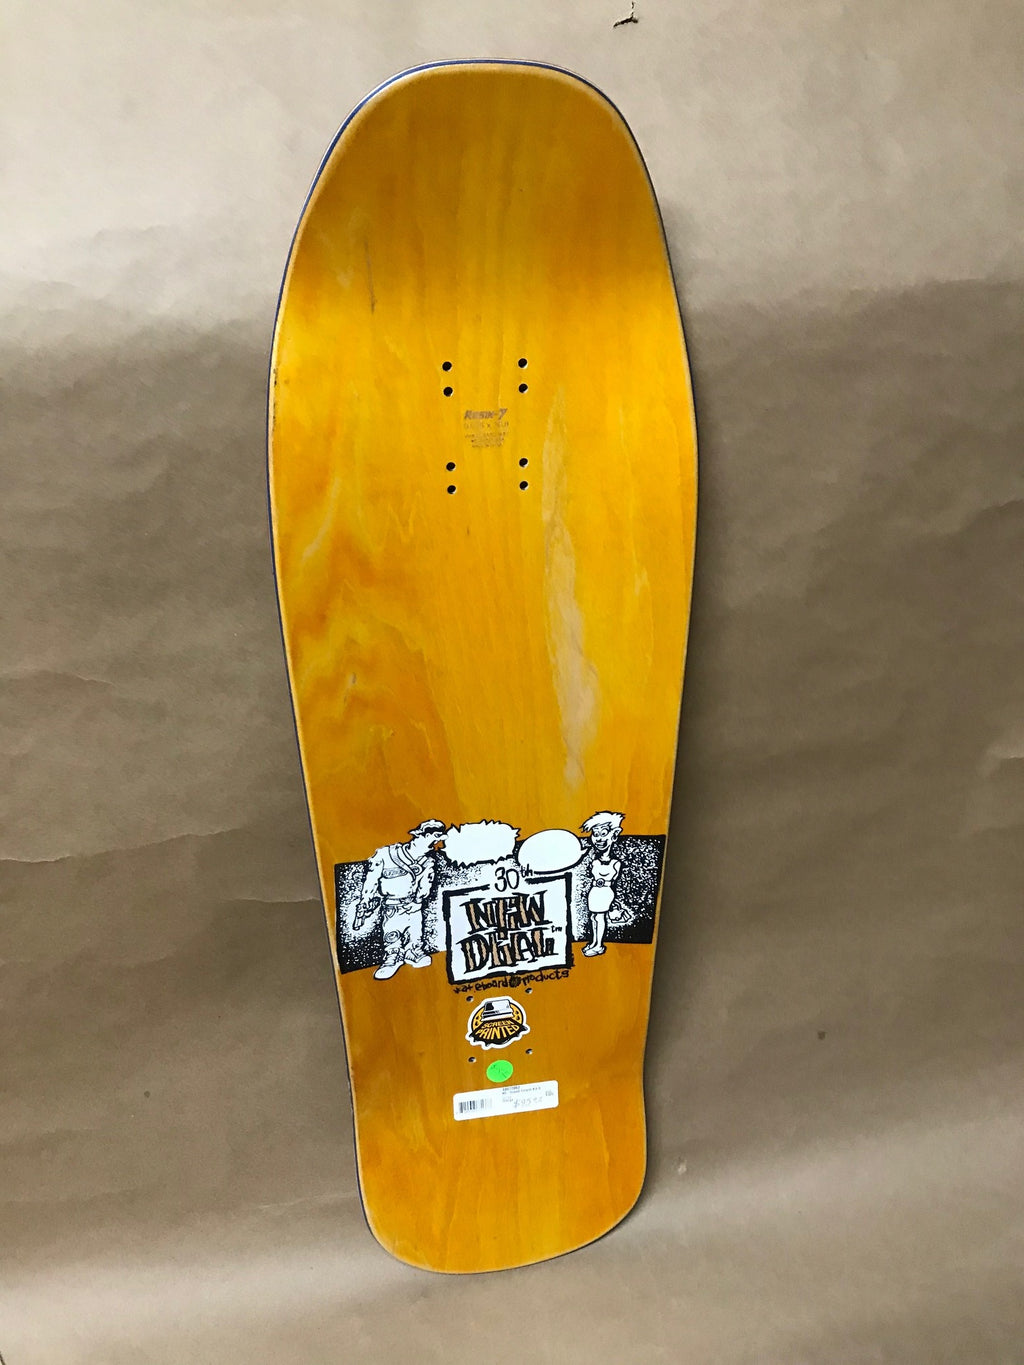 New Deal Howell Tricycle Kid Orange 9.625 Deck